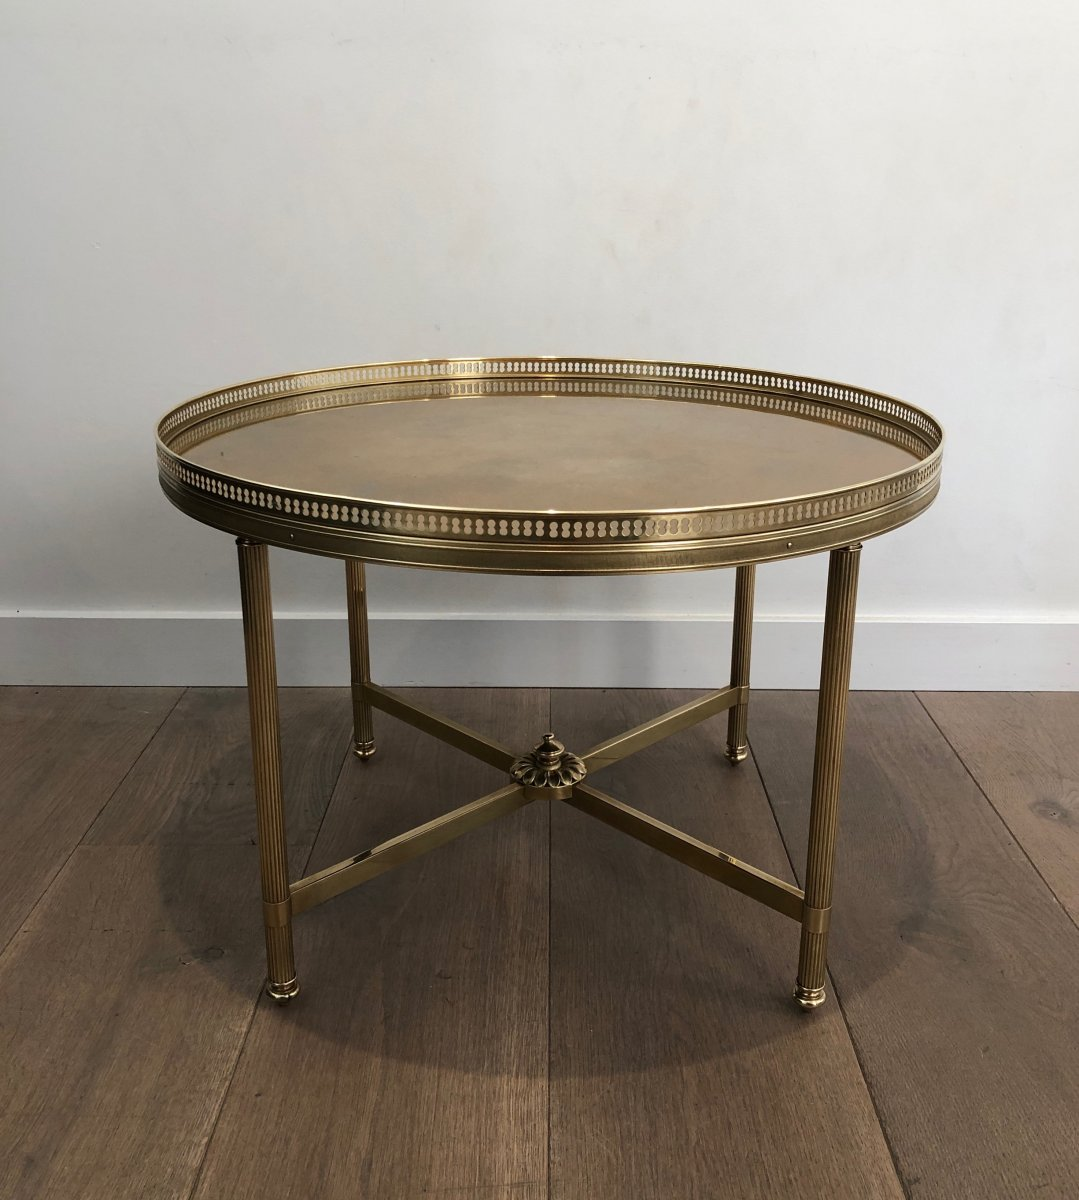 Maison Jansen. Neoclassical Style Small Round Brass Coffee Table With Gold Top. French. 1940's